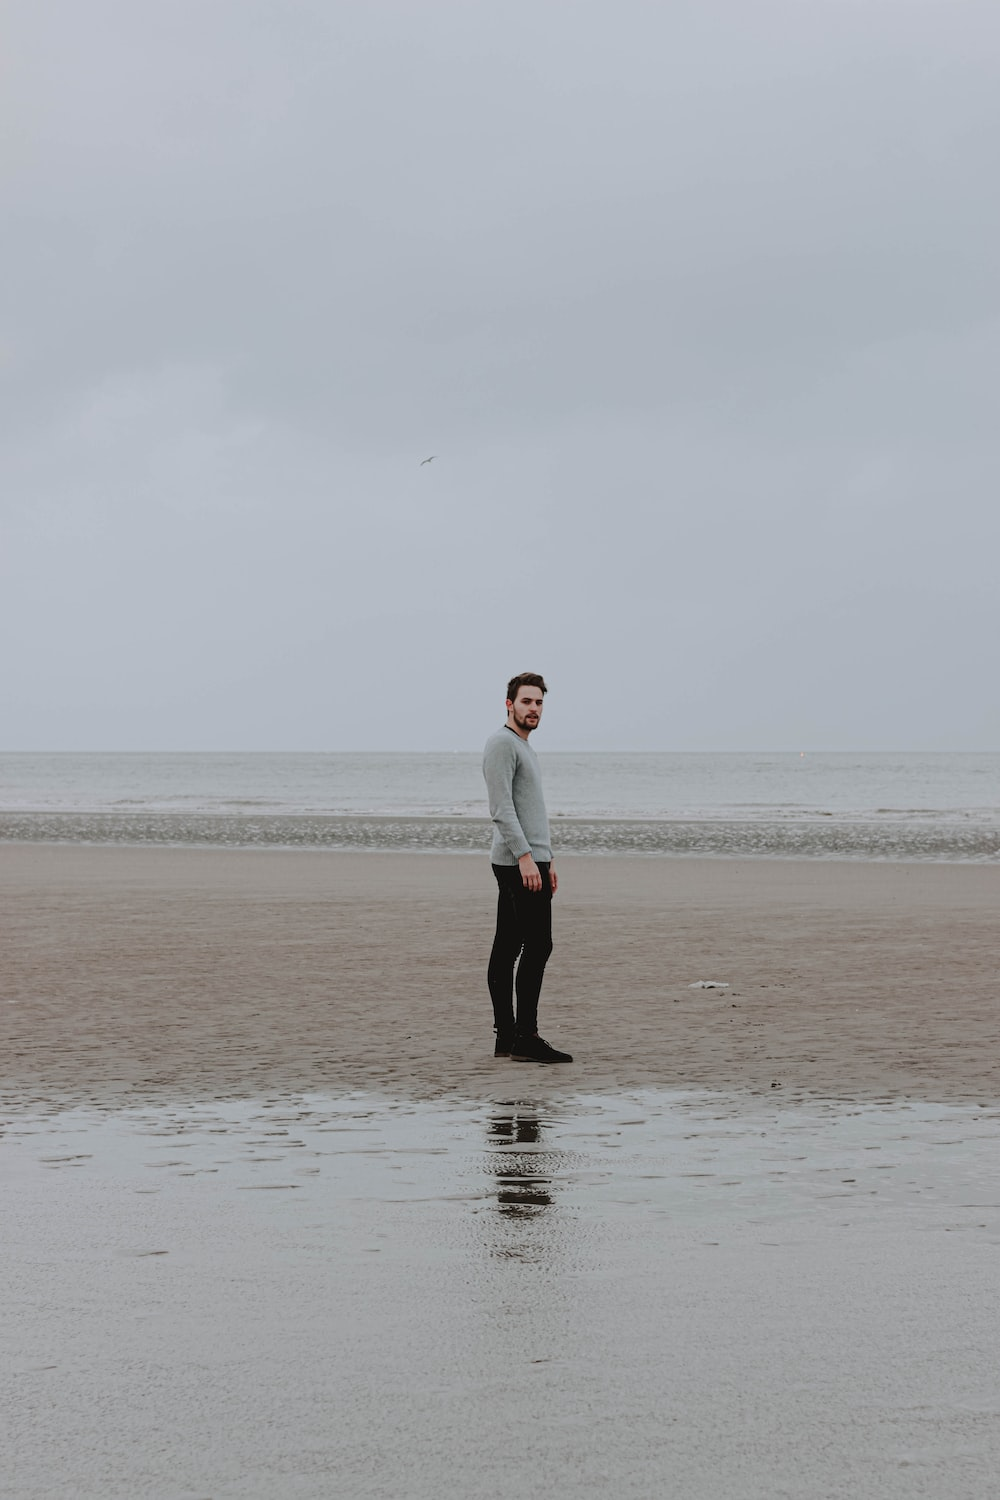 man in white dress shirt and black pants standing on seashore during daytime